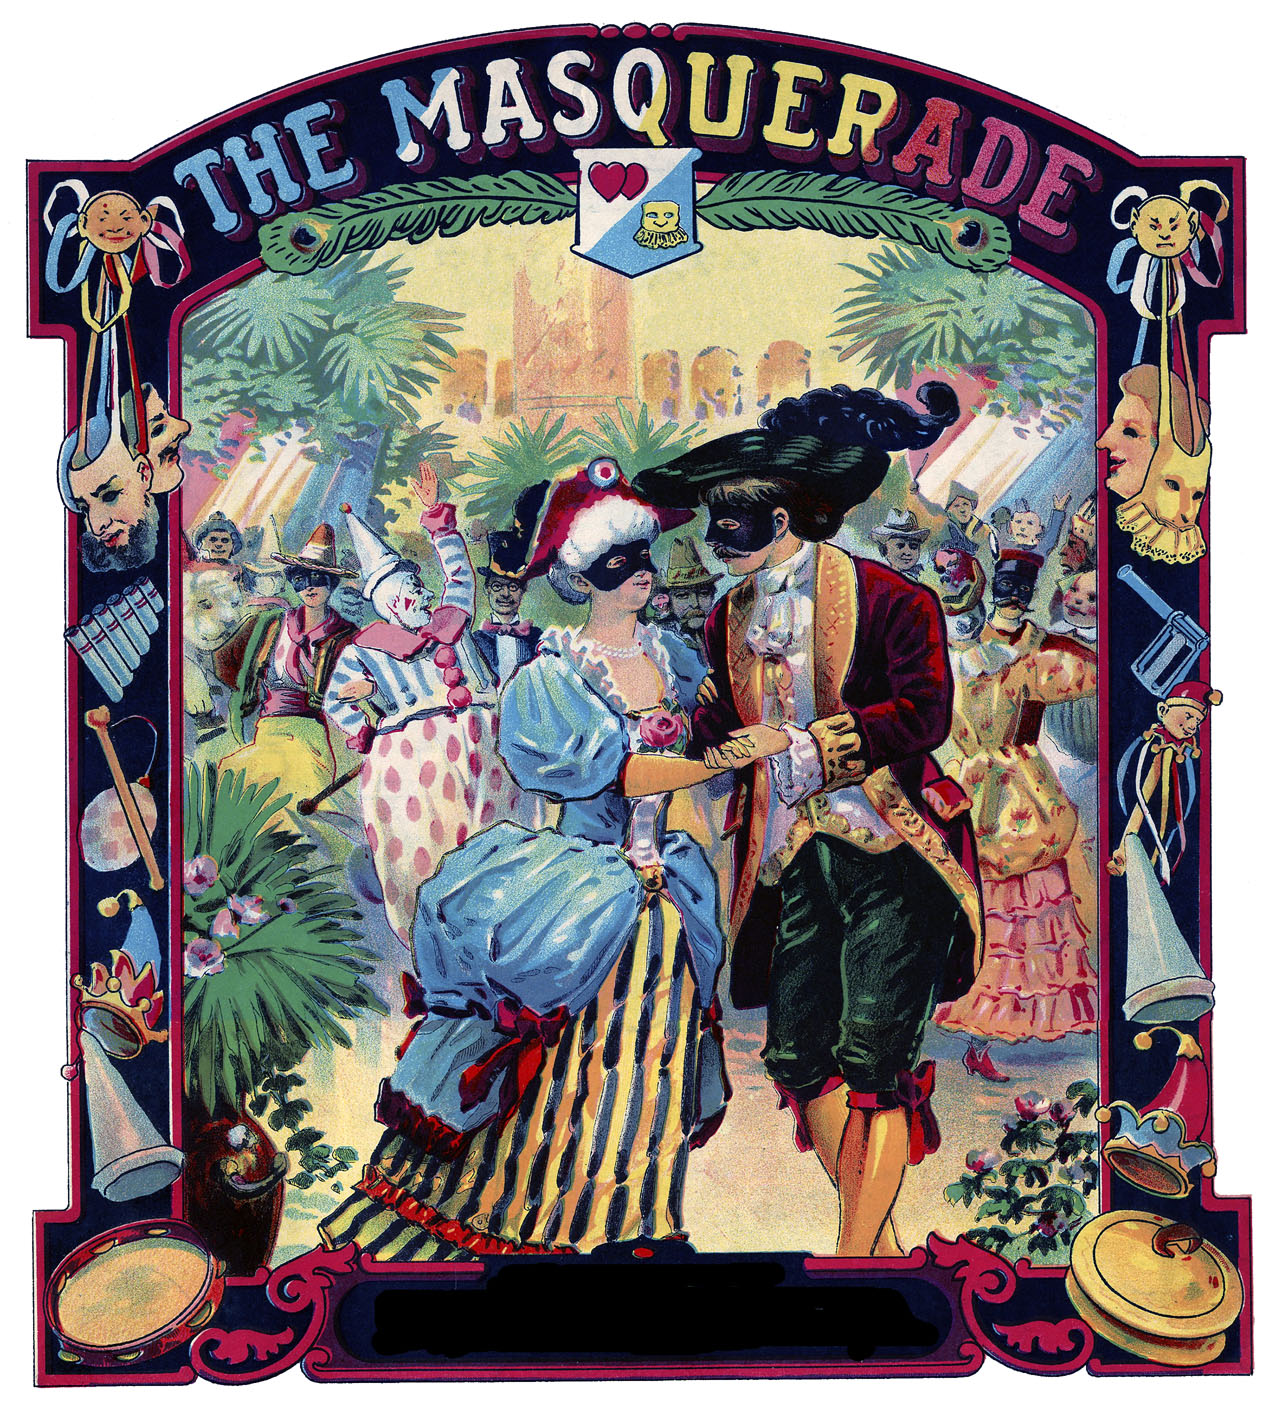 Old Fashioned Wedding Songs: Remarkable Masquerade Ball